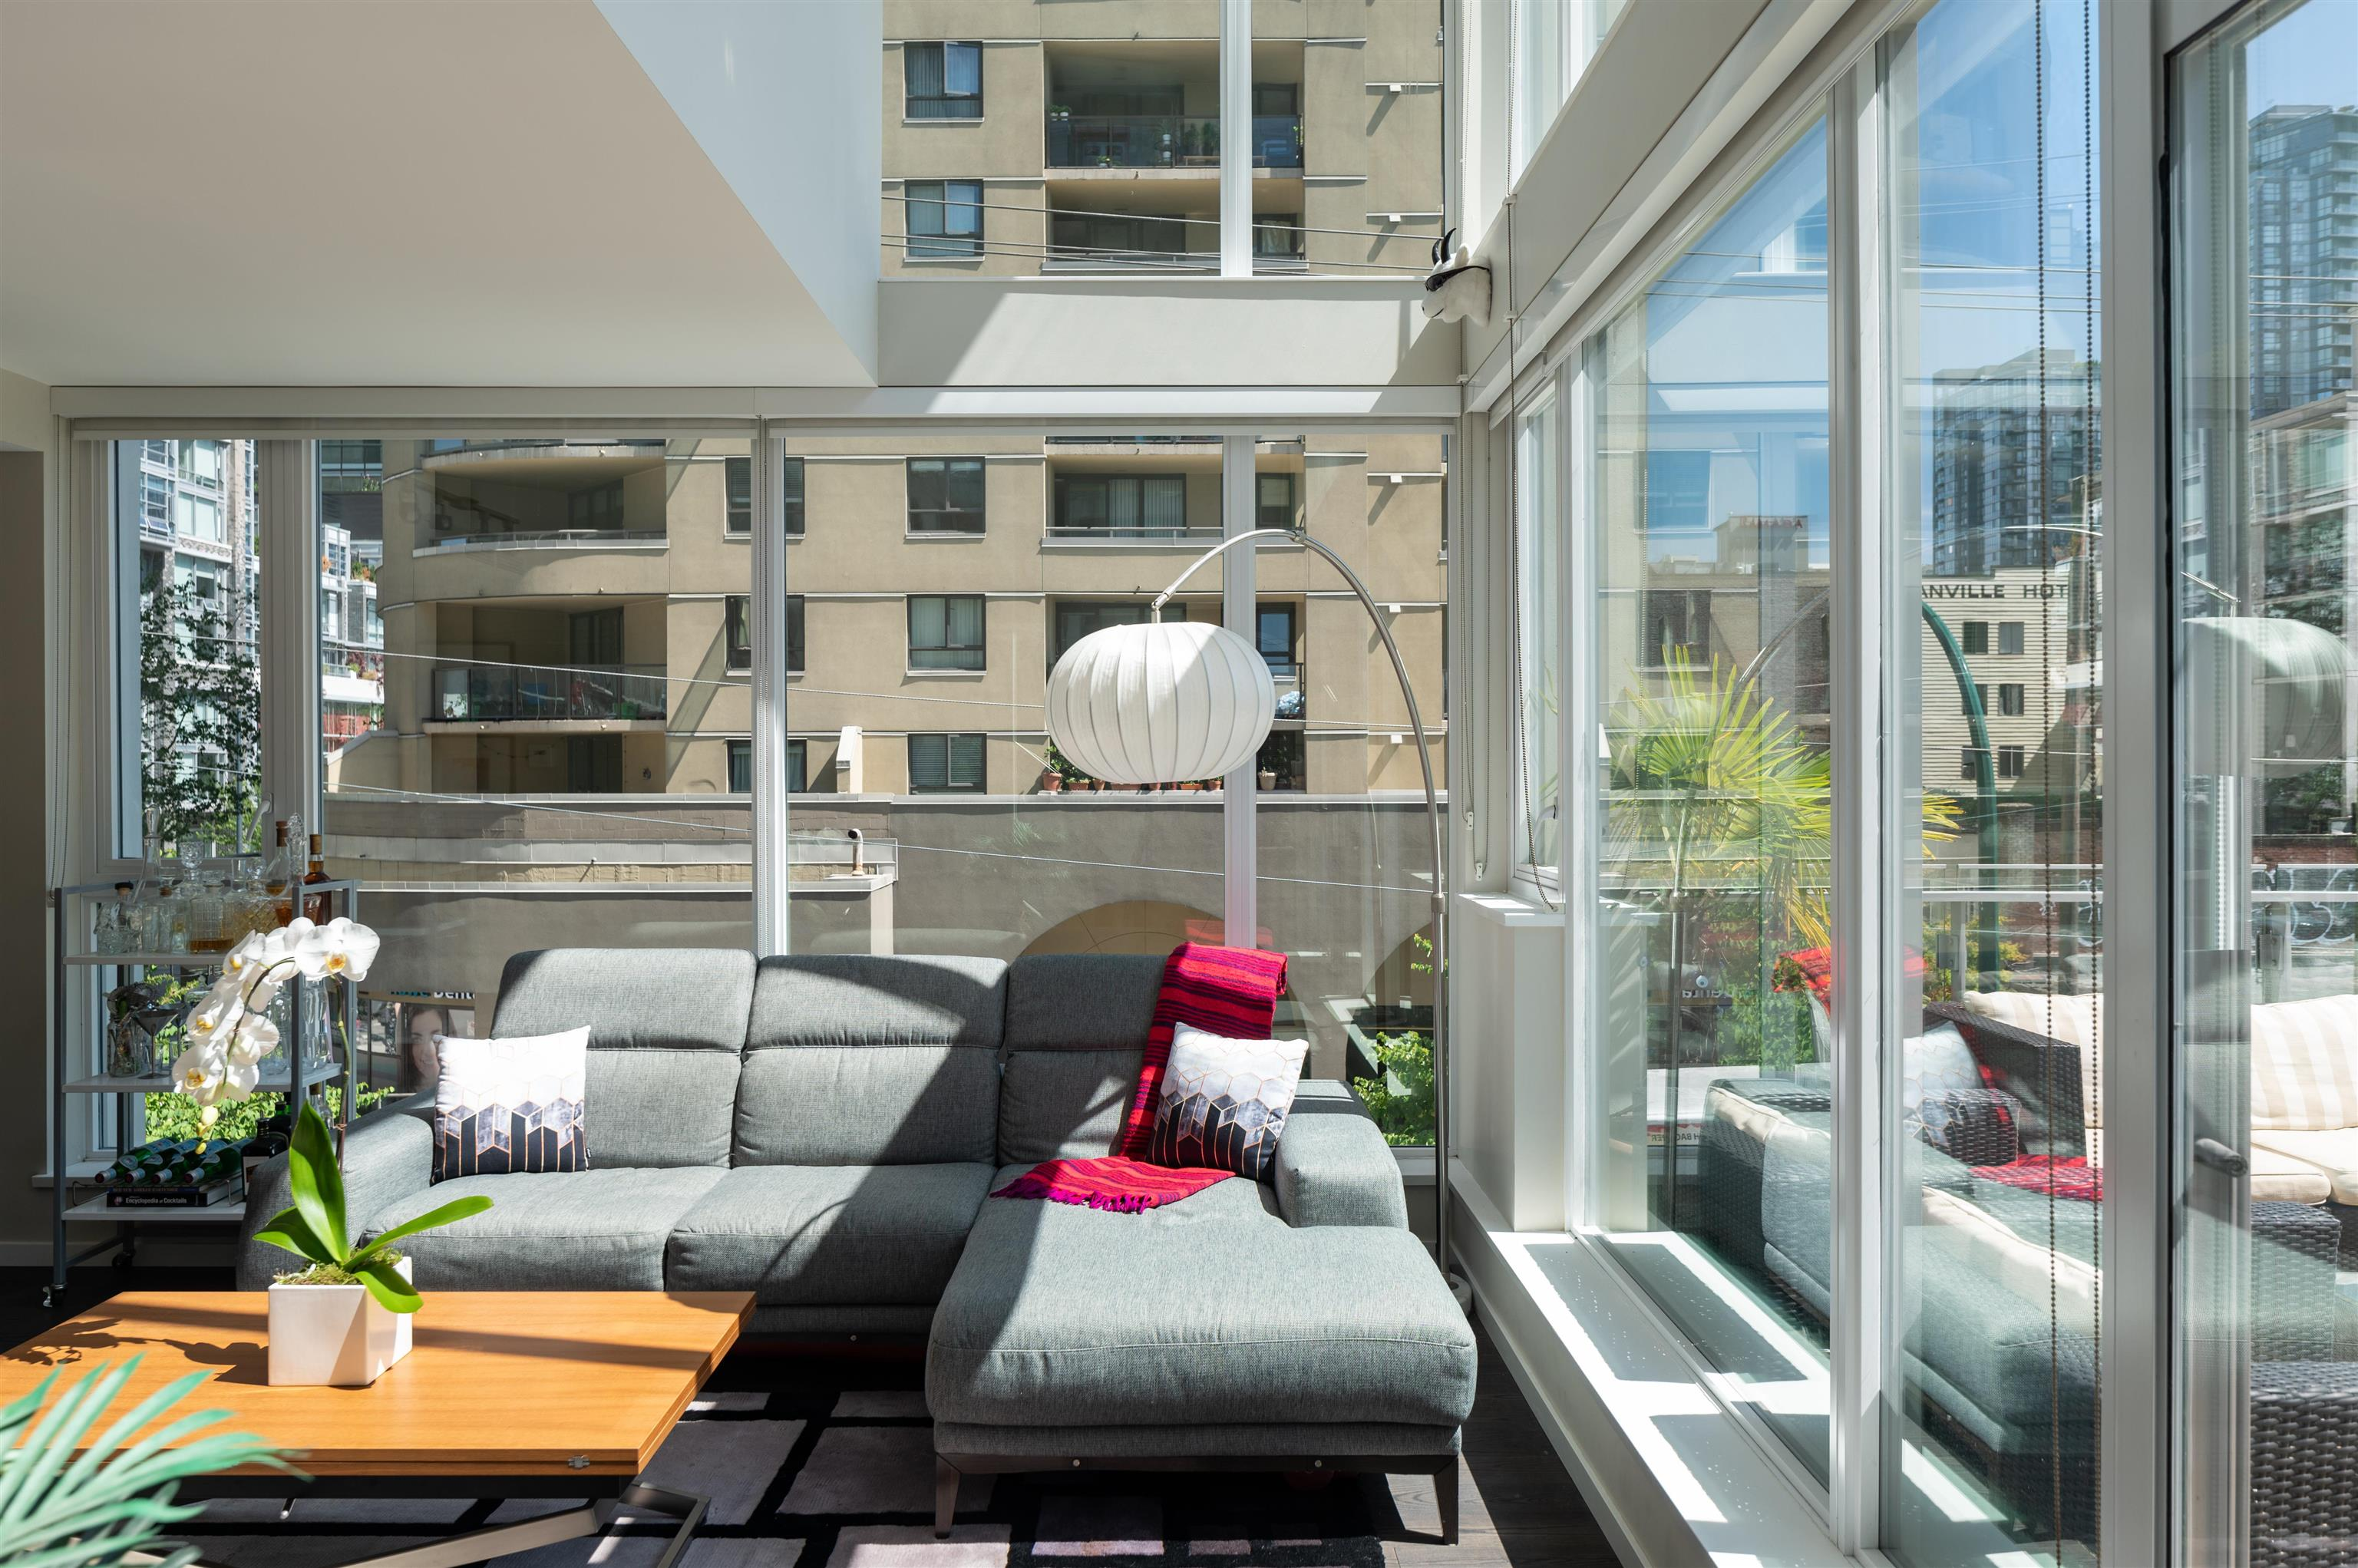 306 1351 CONTINENTAL STREET - Downtown VW Apartment/Condo for sale, 2 Bedrooms (R2617899) - #4